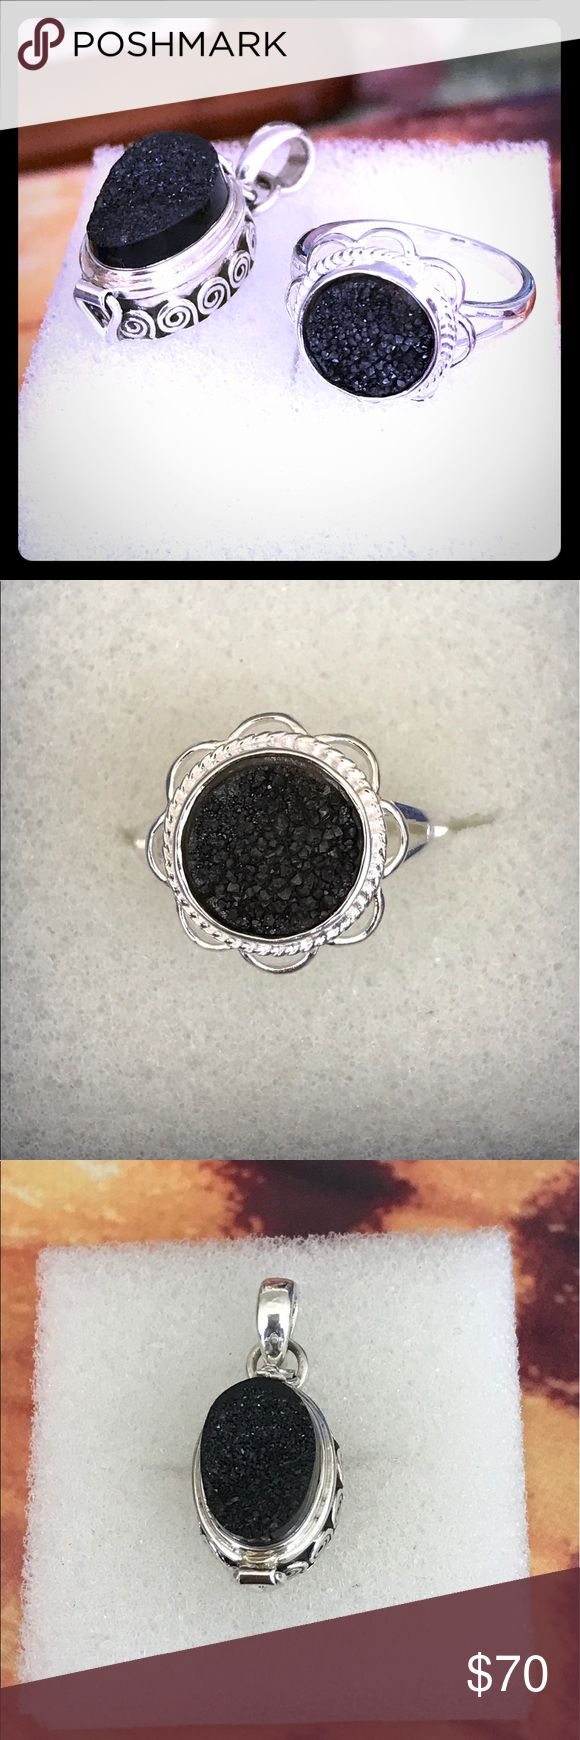 Black druzy floral ring and poison pendant Size 6.75, black druzy floral ring, stamped 925 solid sterling silver with black druzy poison pendant. Latch opening, stamped 925 solid sterling silver. Jewelry